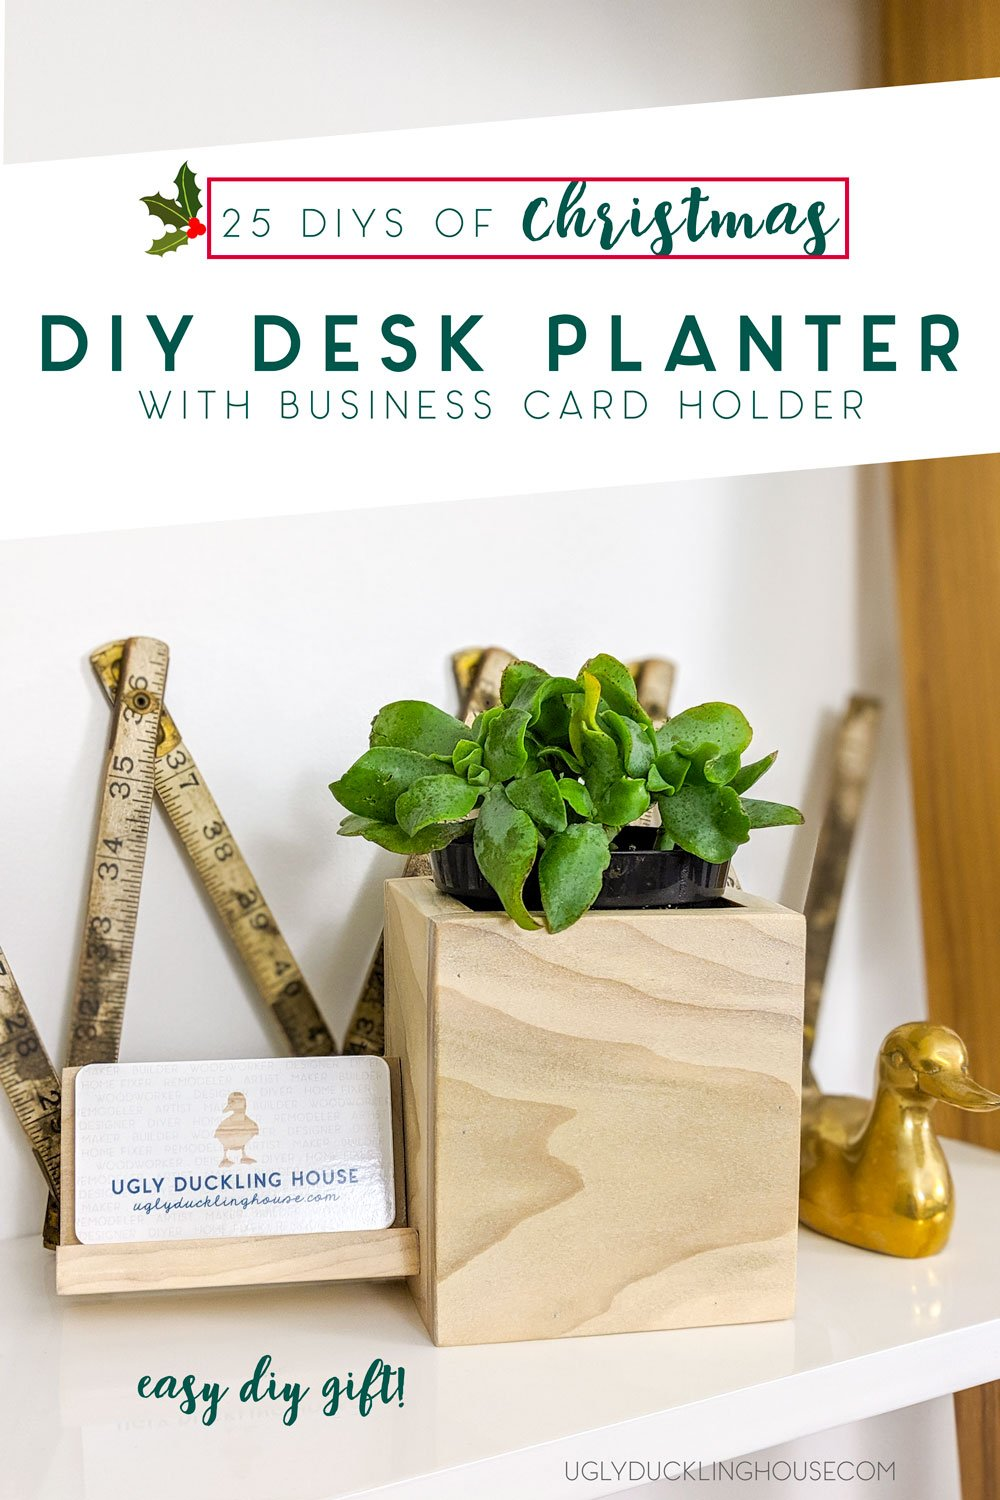 diy desk planter and business card holder - perfect last minute gift idea